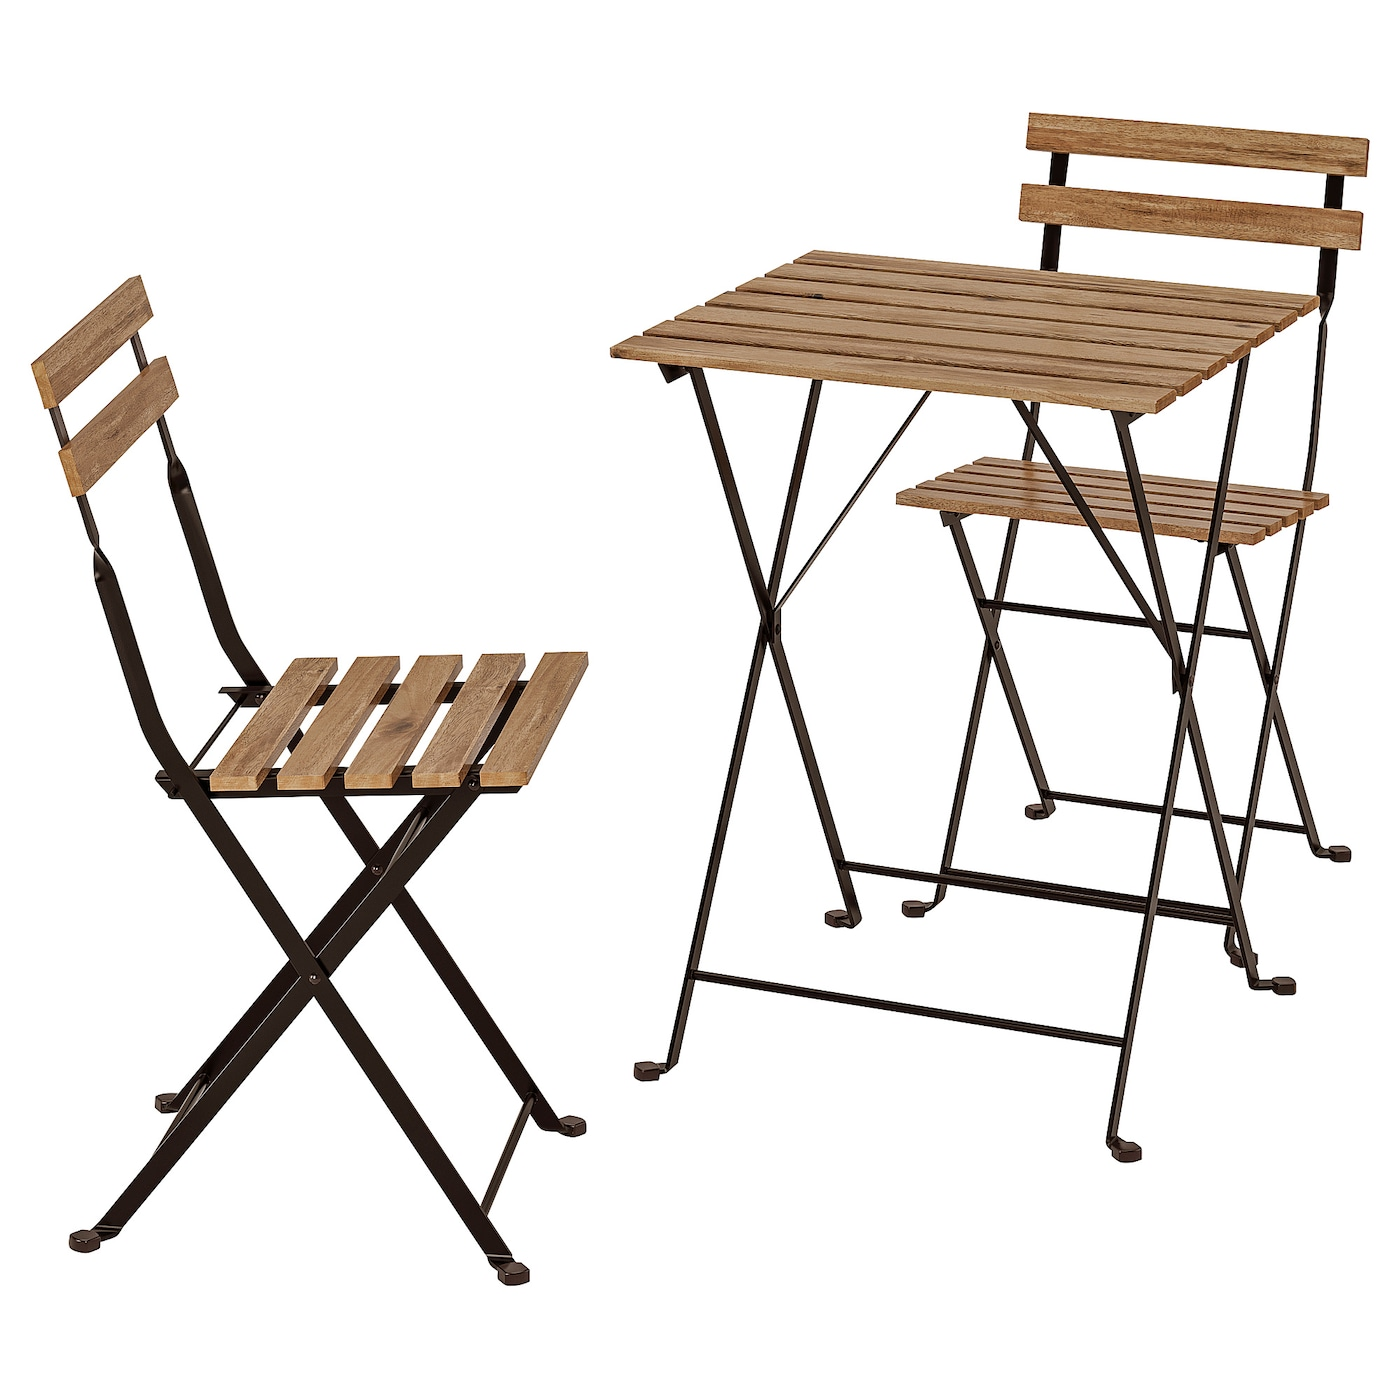 TÄRNÖ Table+9 chairs, outdoor - black/light brown stained